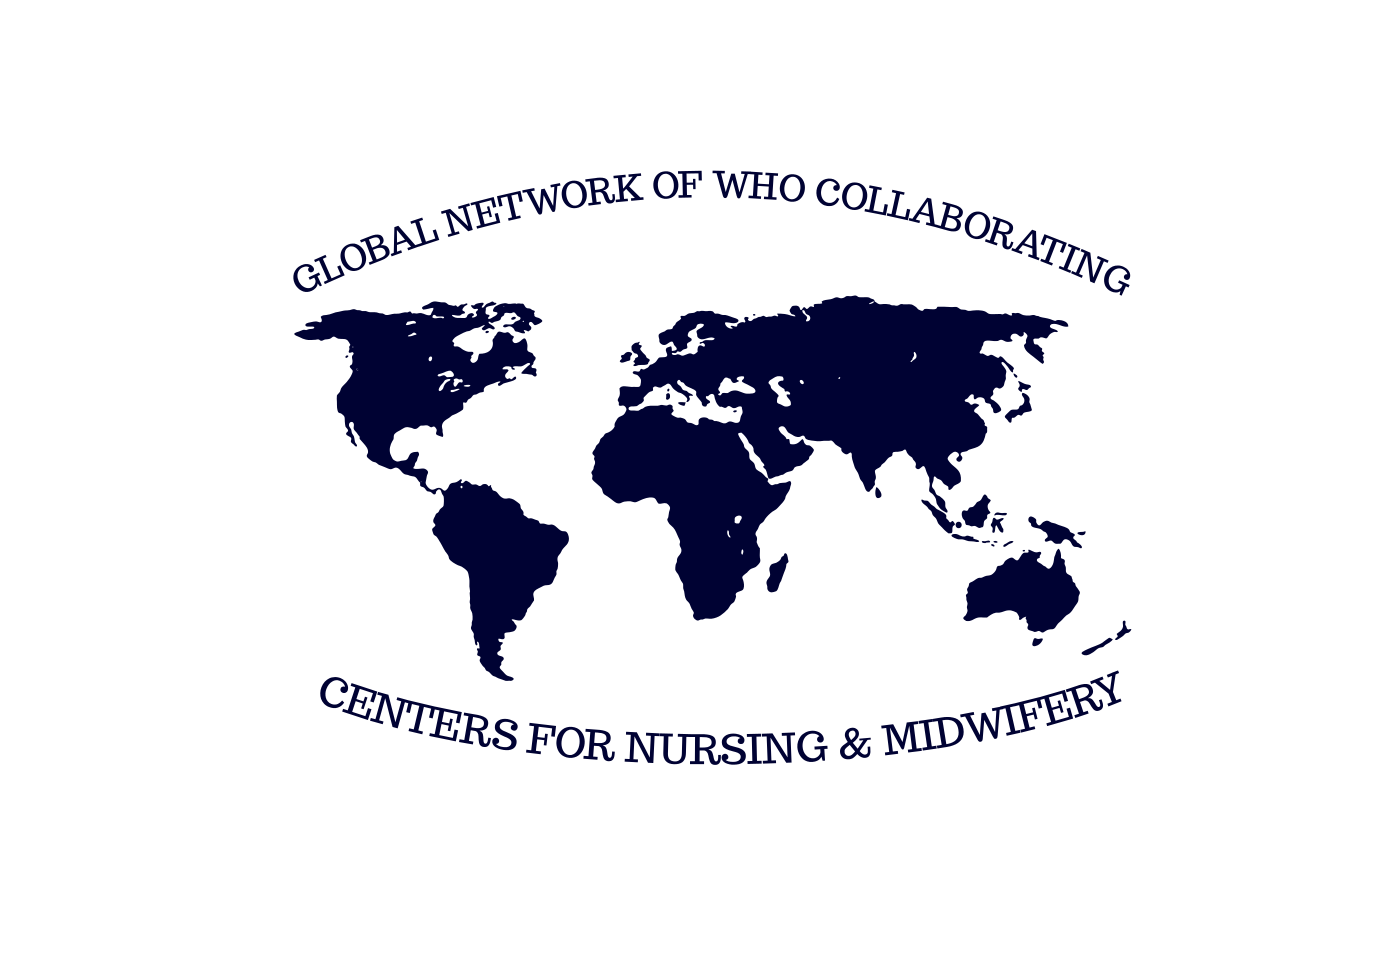 Global Network of WHO Collaborating Centers (WHOCCs)